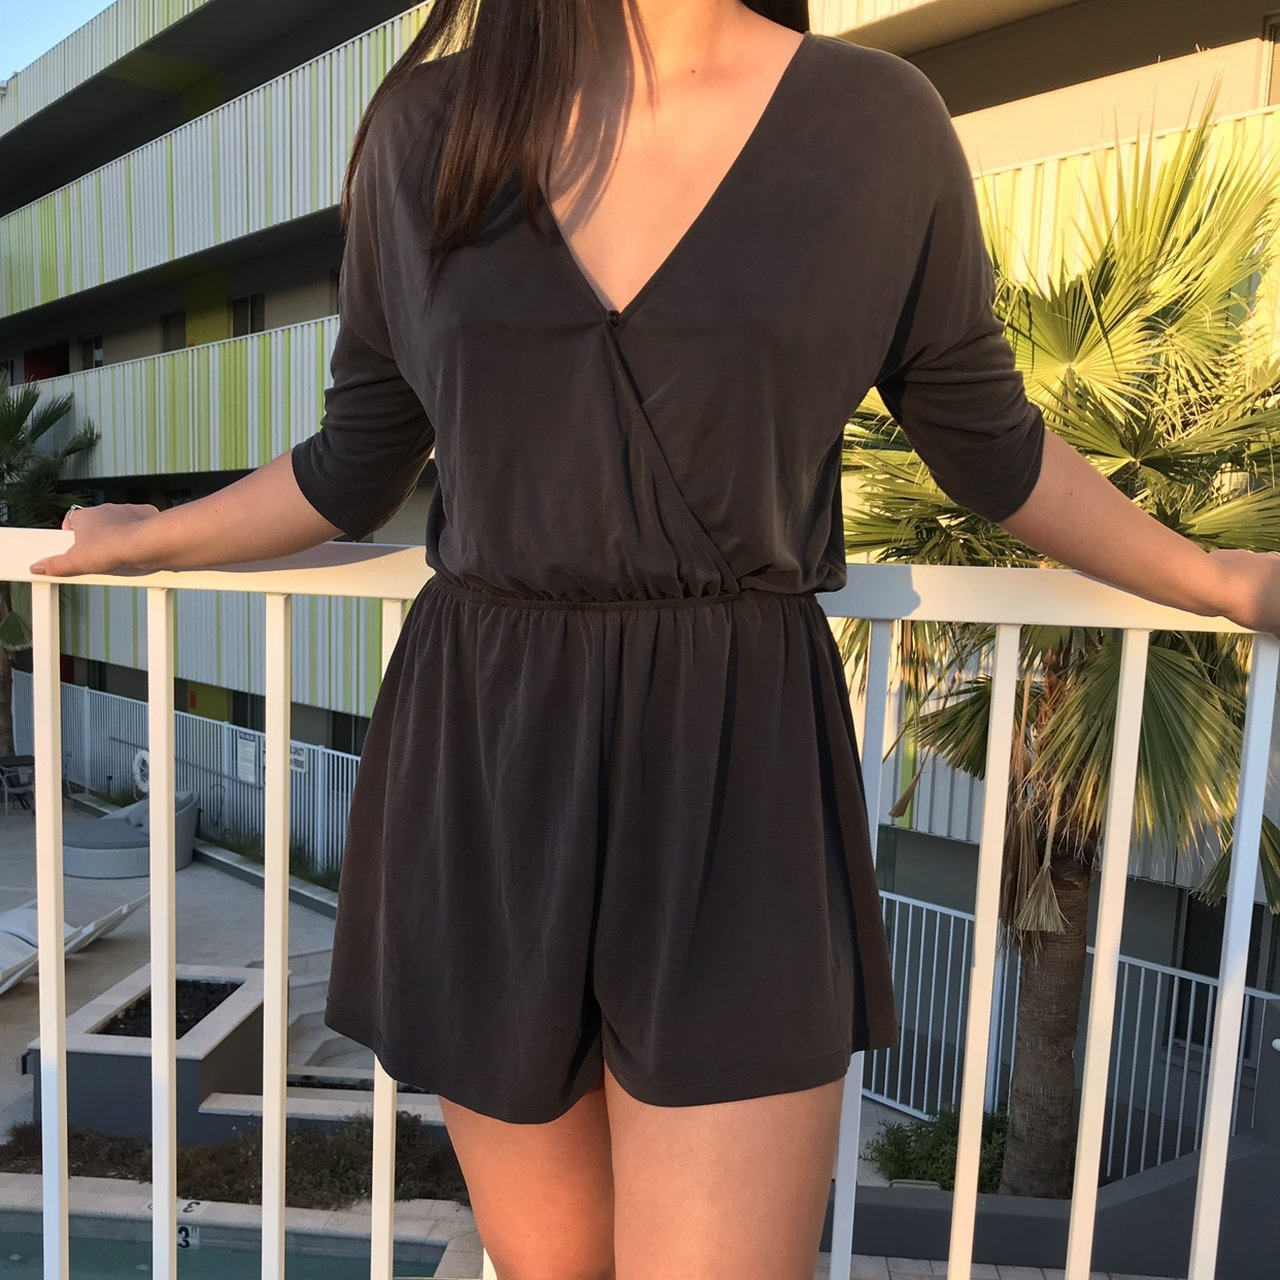 cdf2e9d7c9c9 Dark gray soft romper Has a button in front to change the - Depop